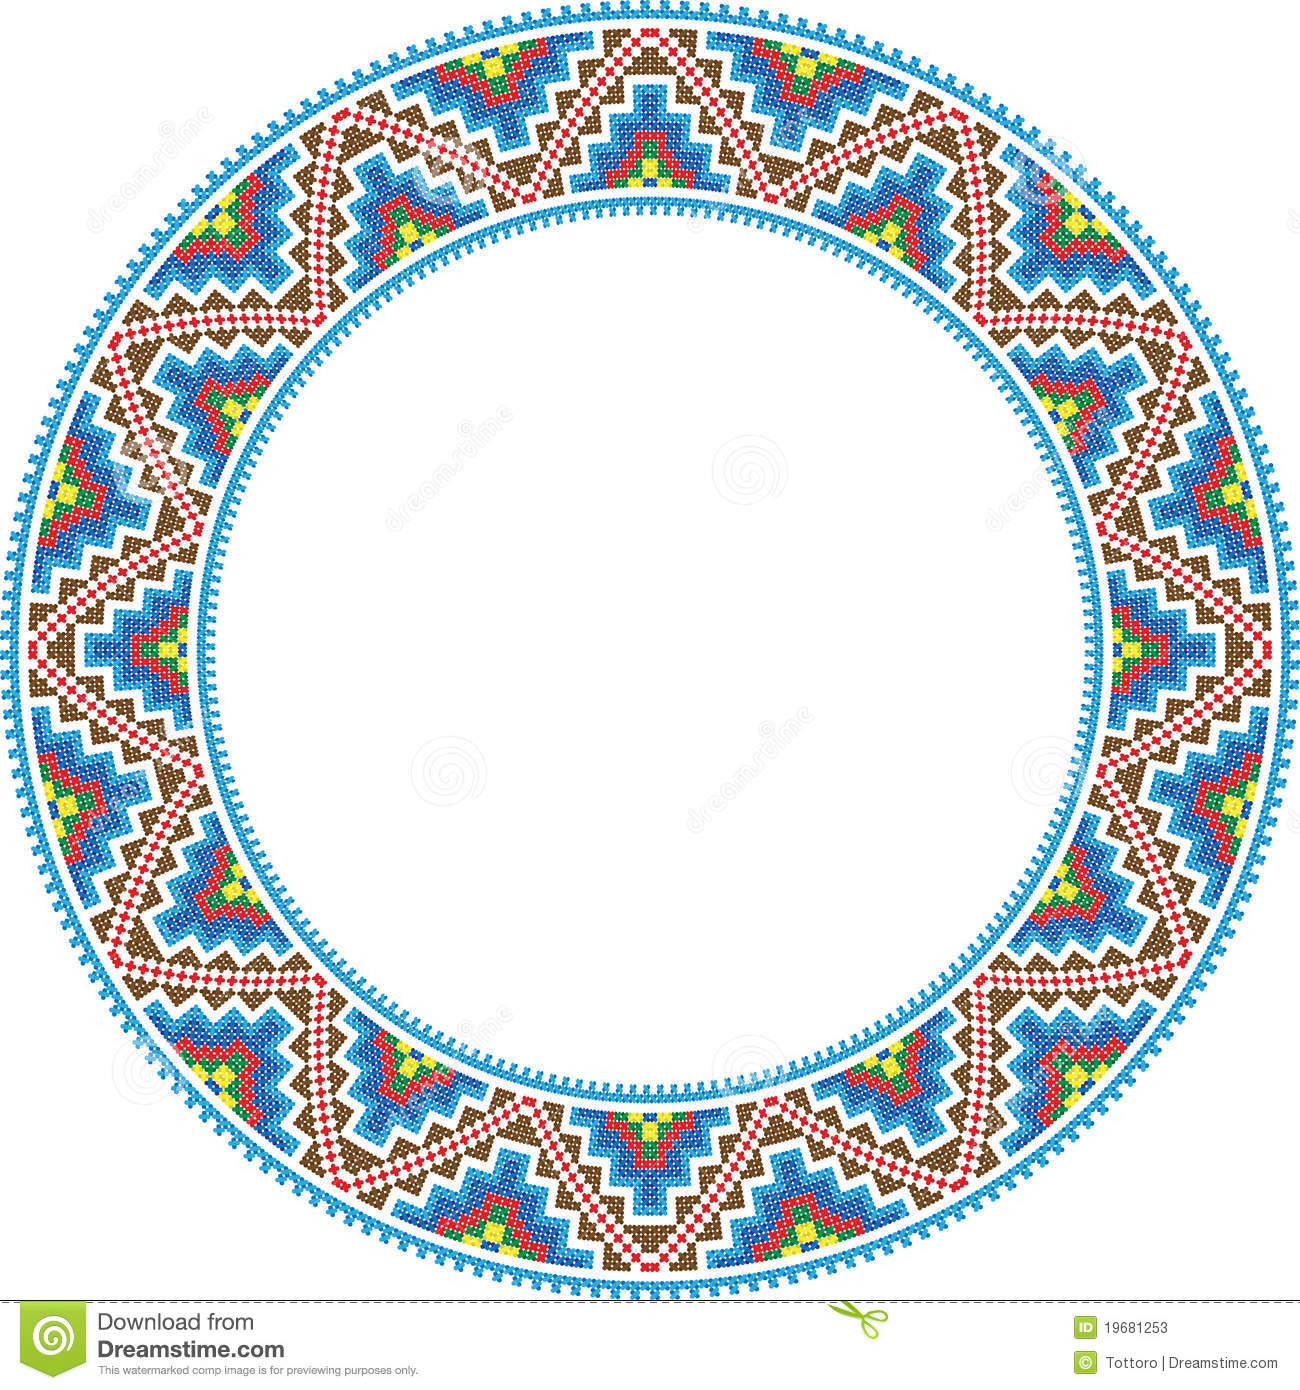 vector folk round frame cross stitch